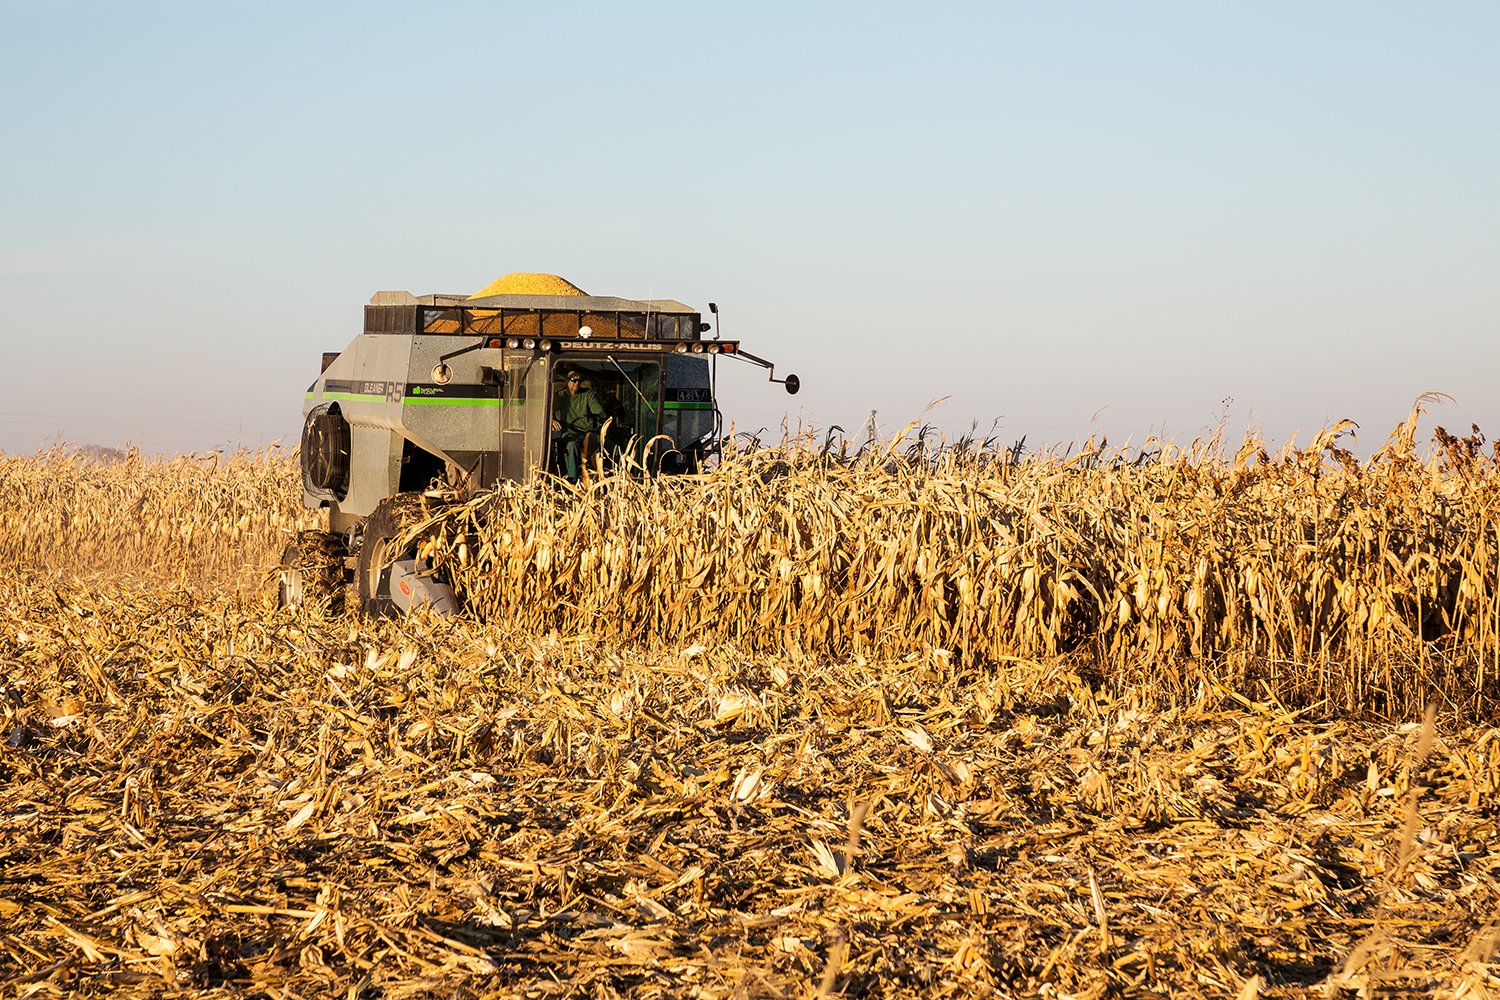 A farmer harvests corn near Washington, Iowa on Sunday, Nov. 19, 2017.